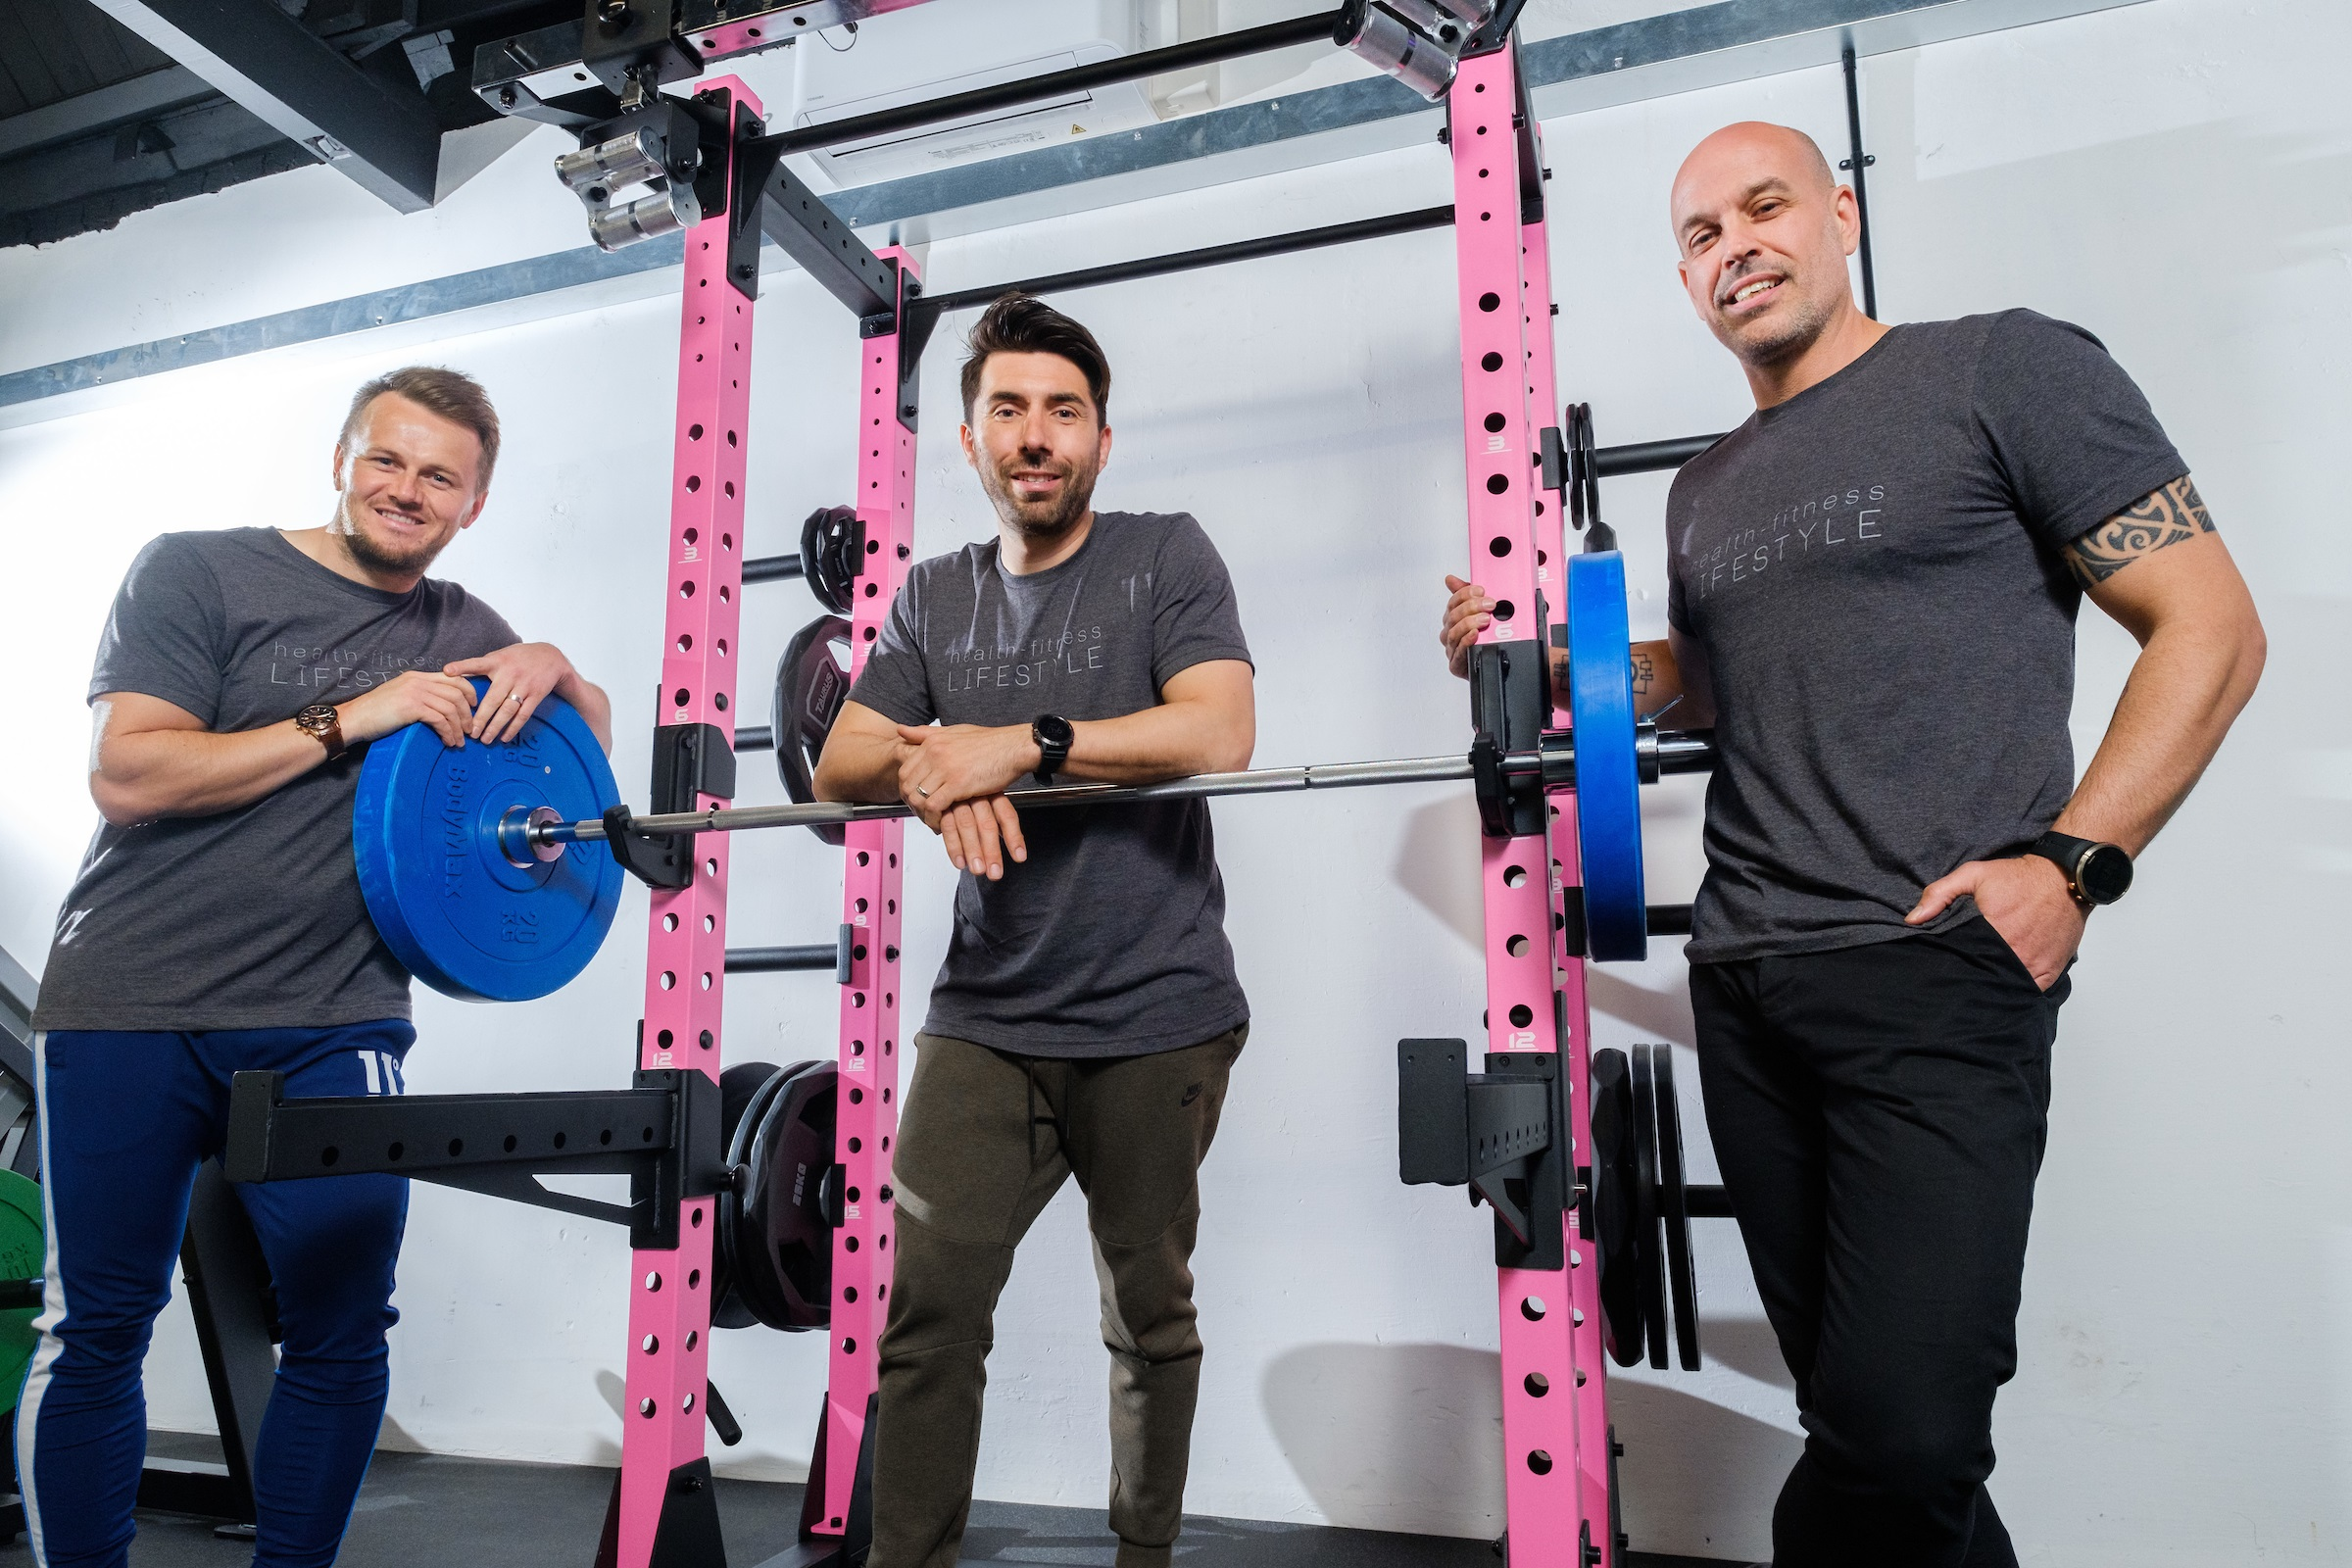 From left, Wayne Audsley, Riccardo Seaton and Dale Robinson are inviting people to try out their new urban gym and fitness space in Hull's regenerated Fruit Market waterfront quarter.